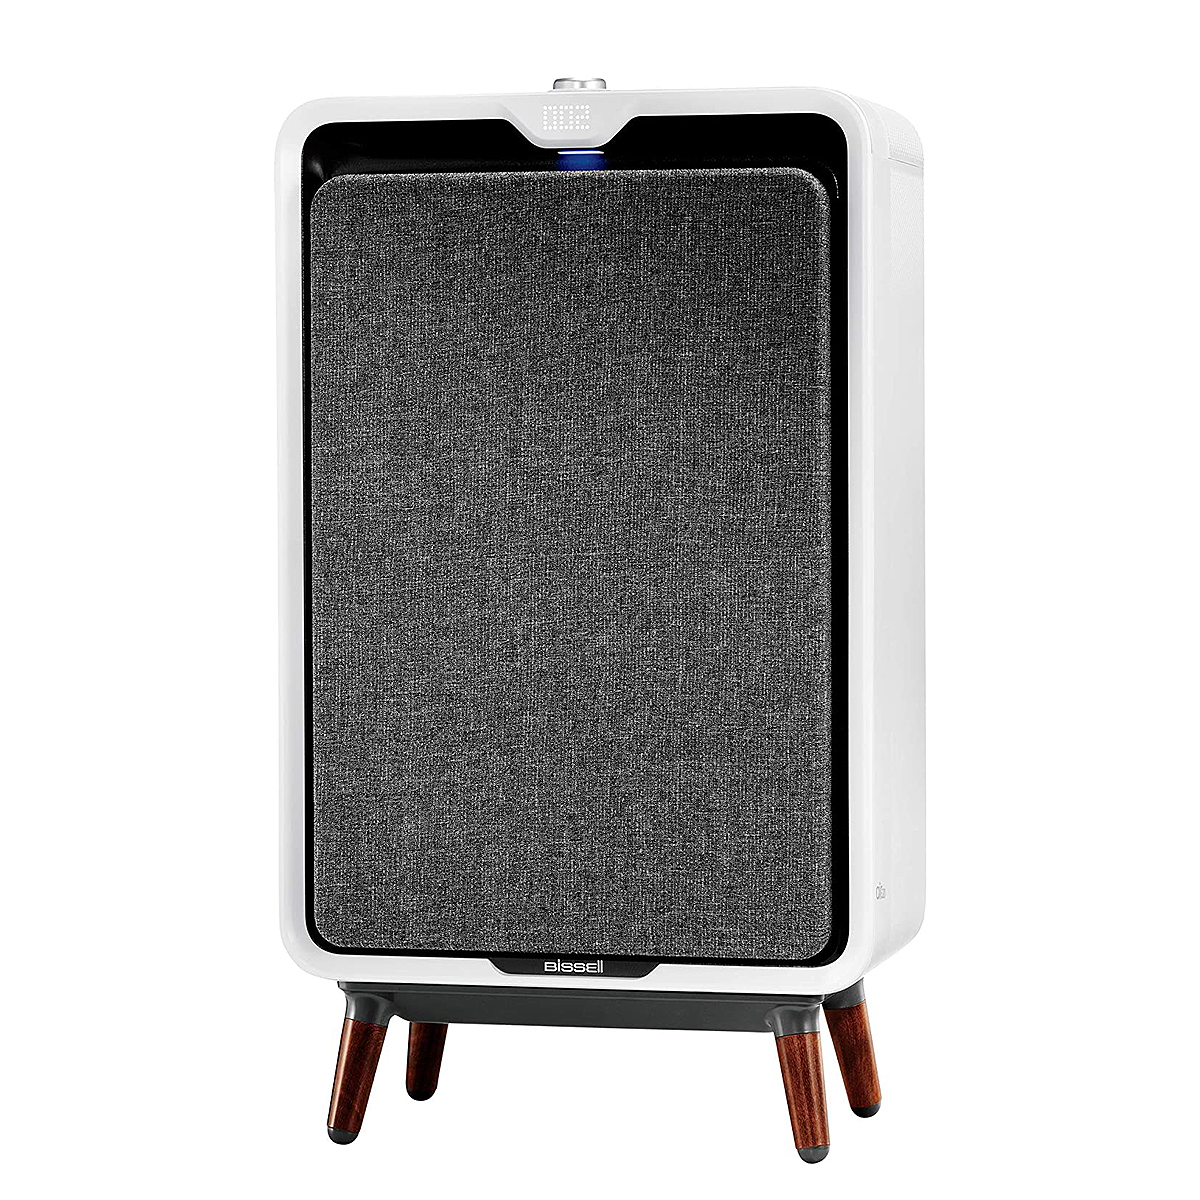 bissell-air-purifier-prime-day